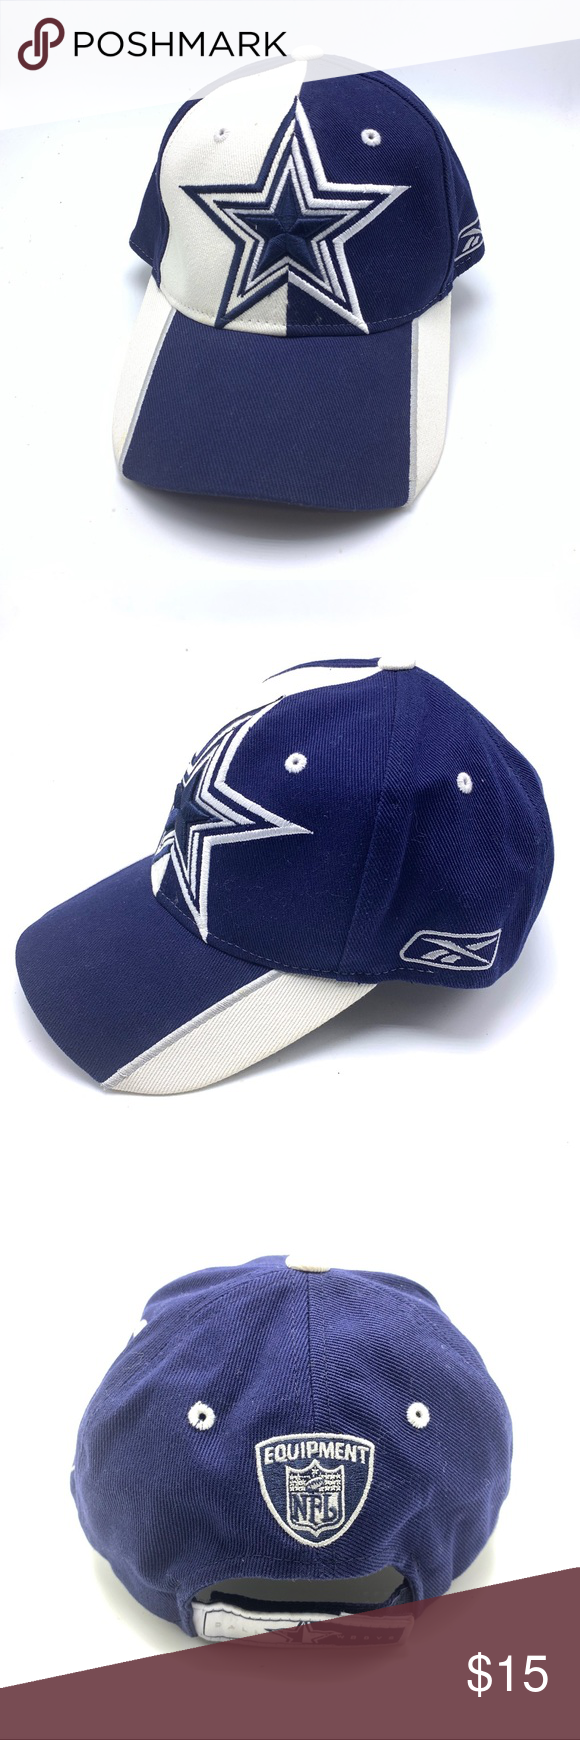 f57358ad6 Dallas Cowboys Hat Reebok NFL Dallas Cowboys Hat Reebok NFL Reebok Accessories  Hats